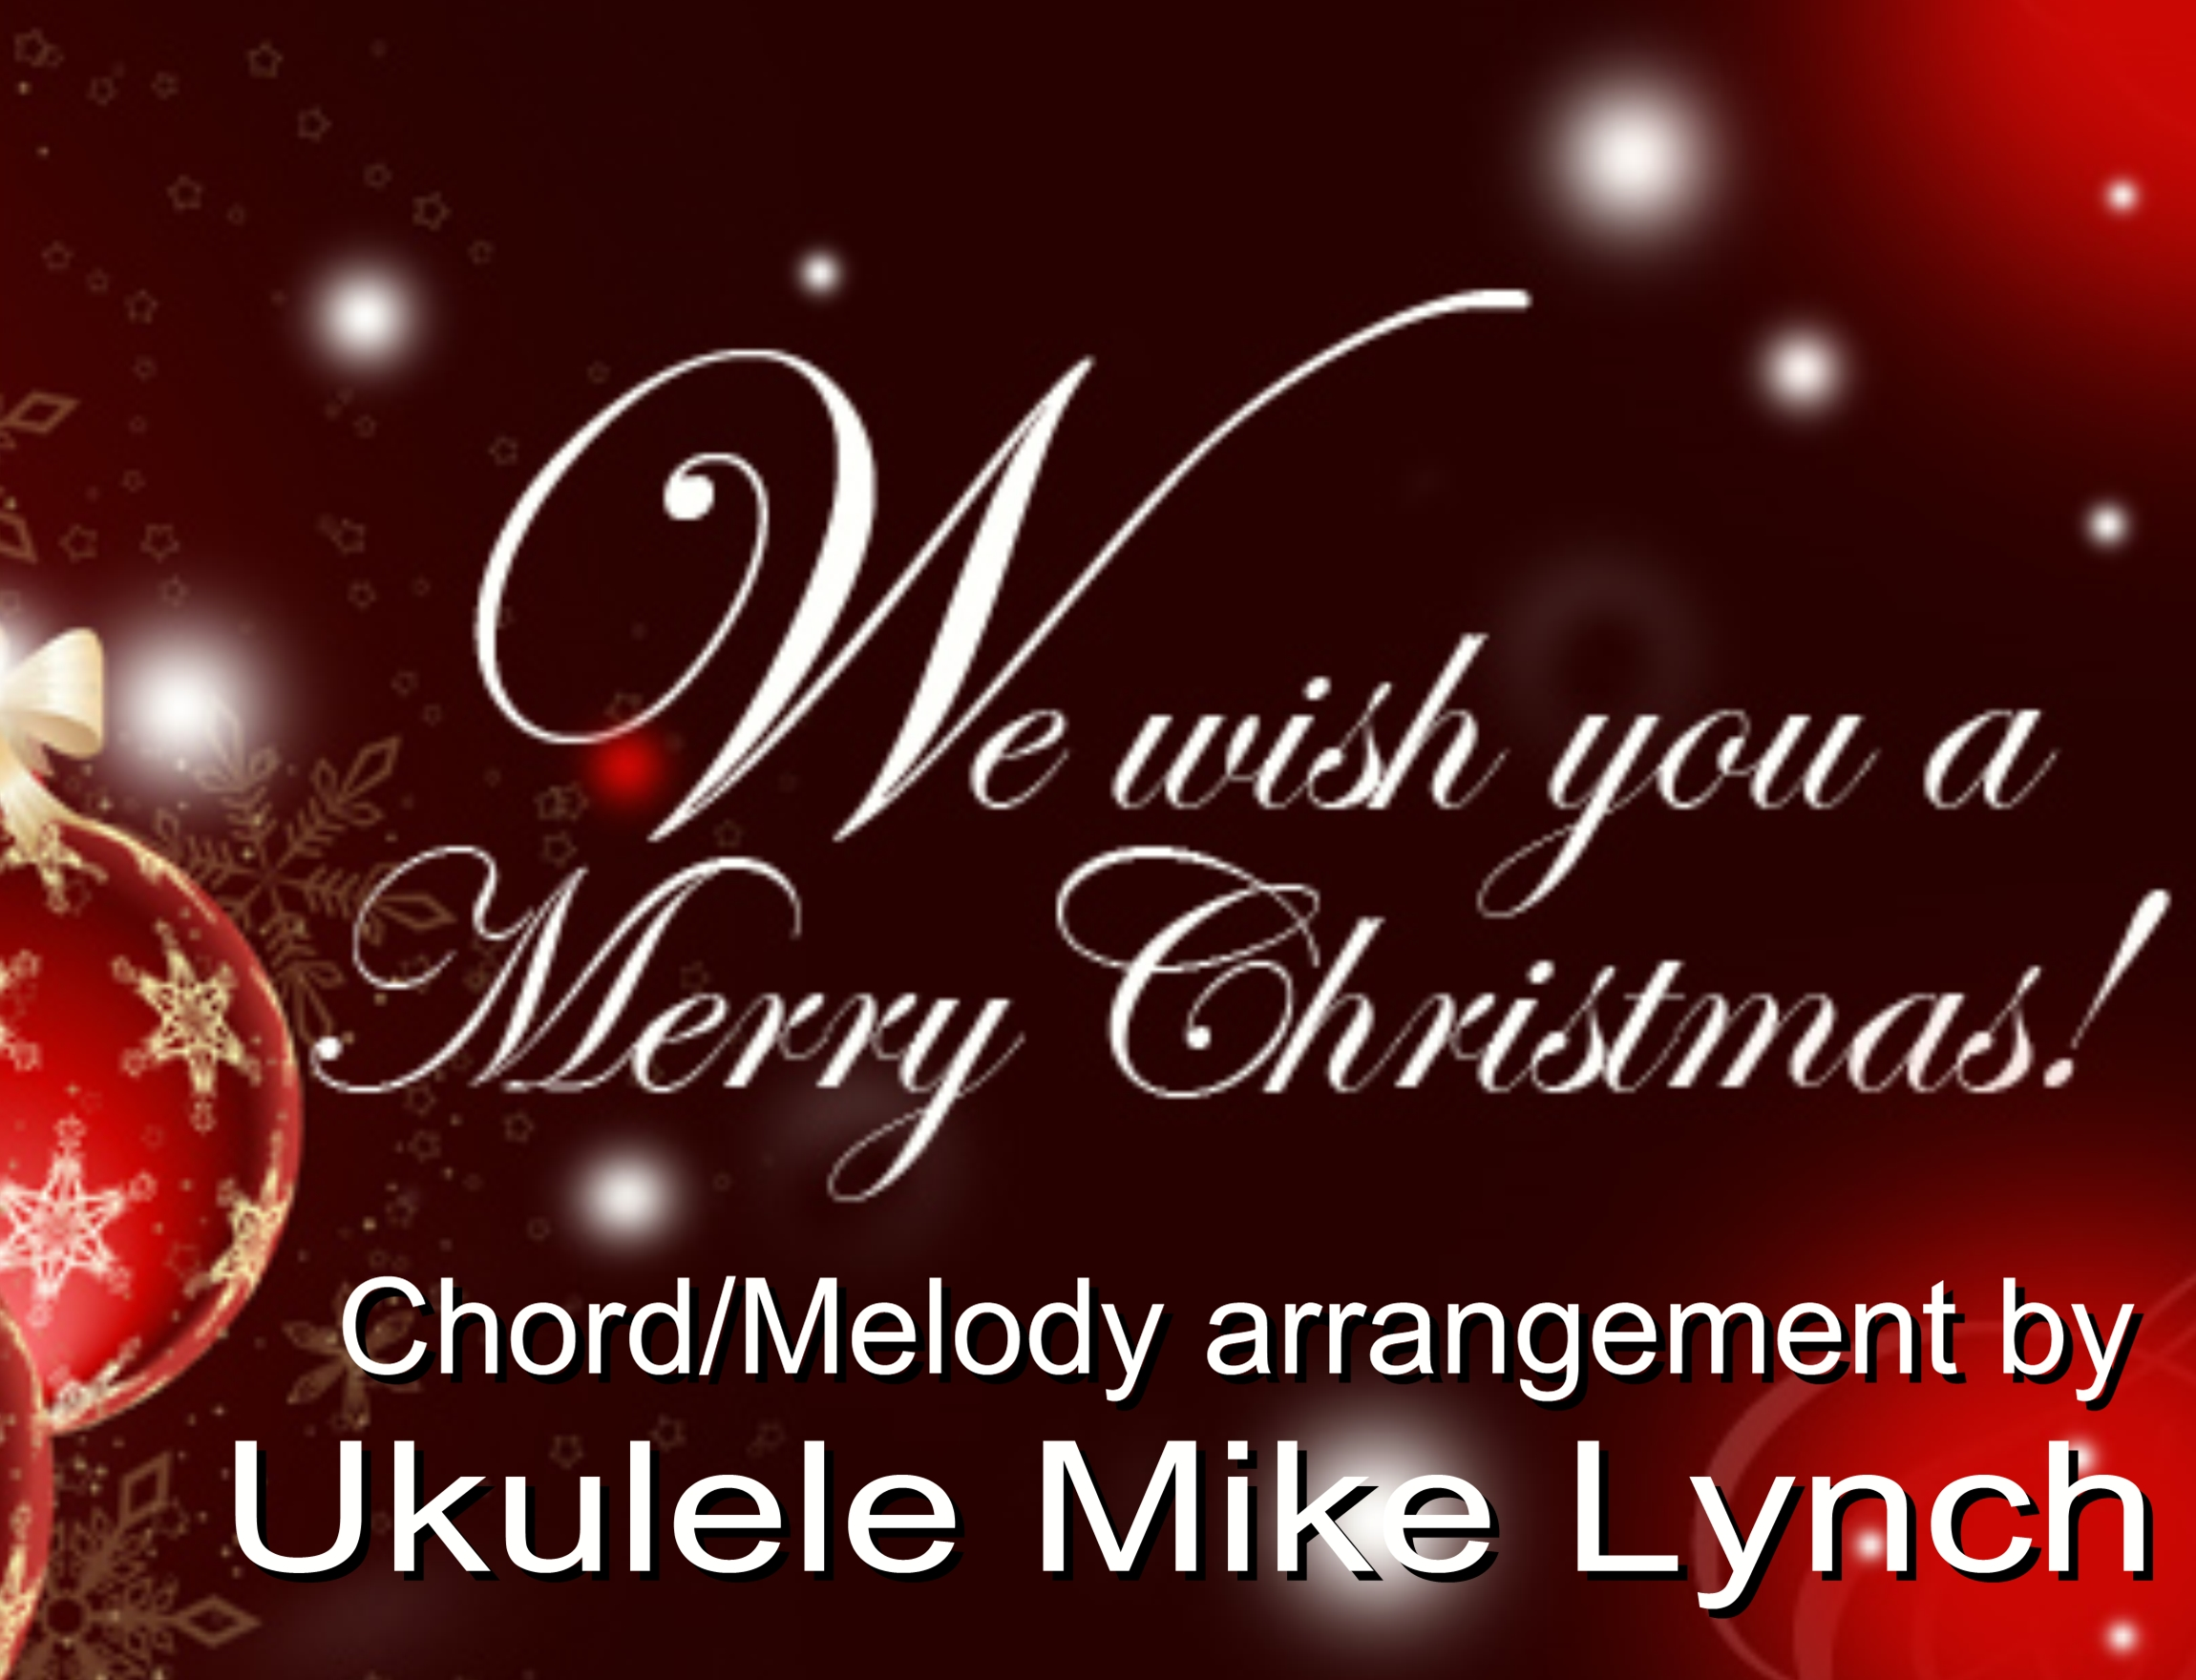 We Wish You A Merry Christmas Chordmelody Arrangement By Ukulele